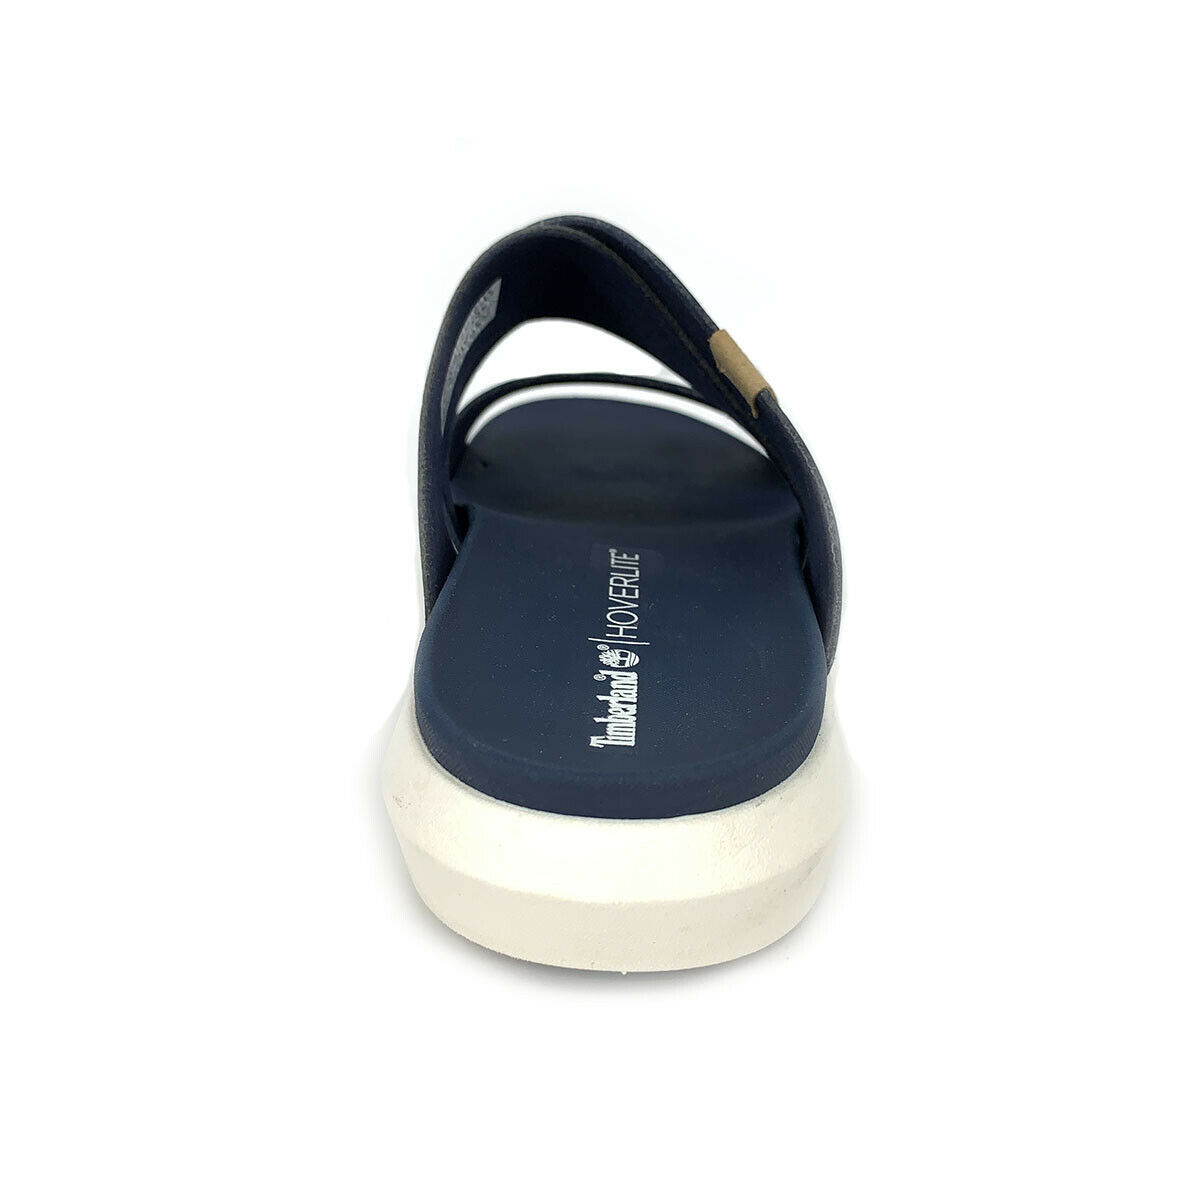 Timberland Women's Wilesport Navy Slip On Sandals A1XPH image 3